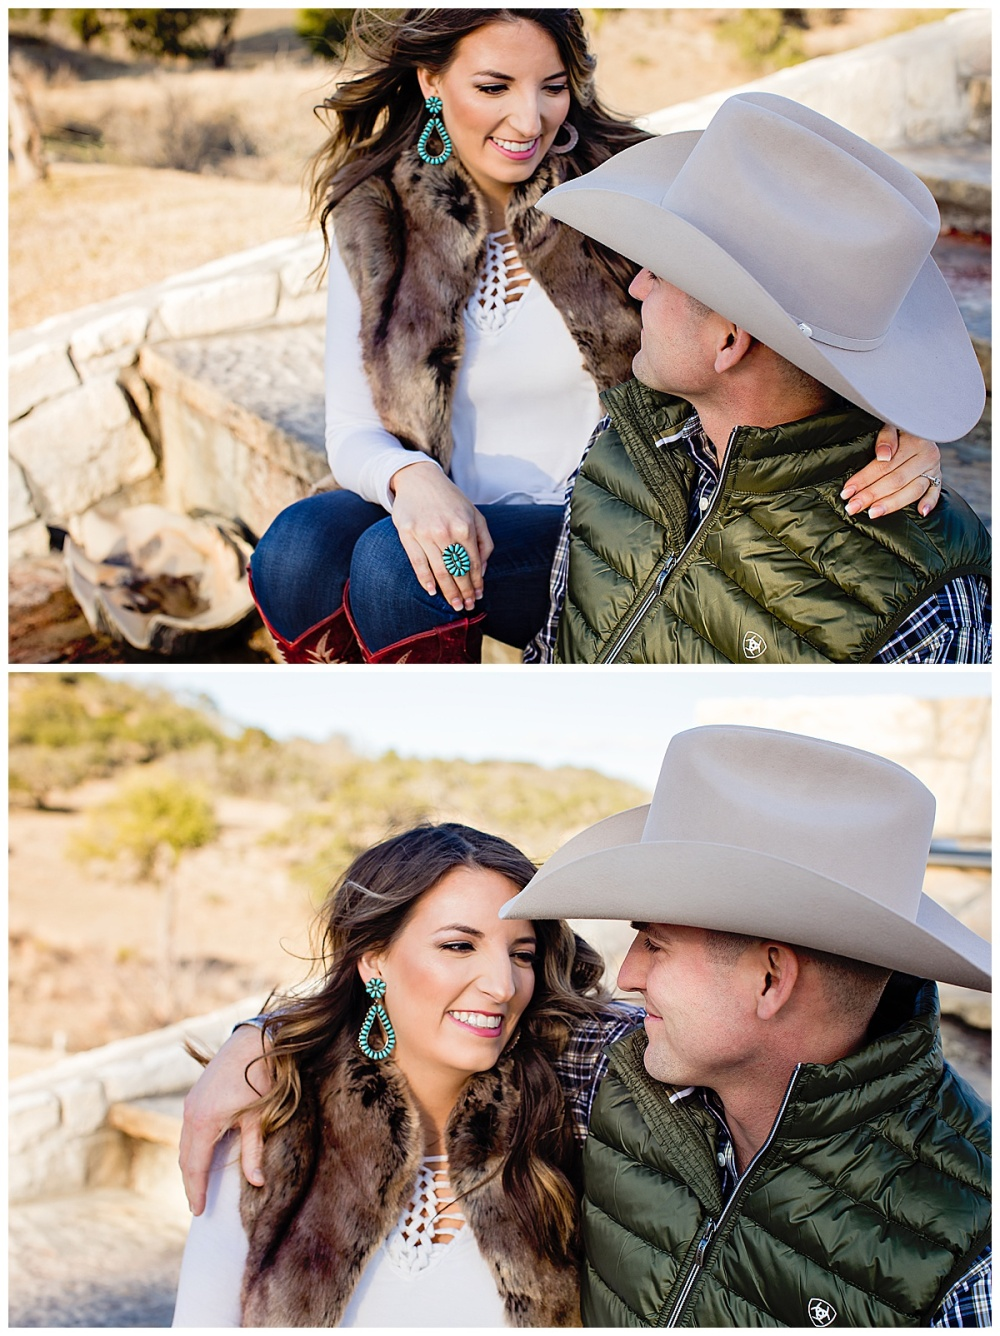 South-Texas-Wedding-Photographer-Engagement-Photos-Happy-H-Ranch-Comfort-Texas-Sunset-Couples-Carly-Barton-Photography-Justin-Erica_0003.jpg